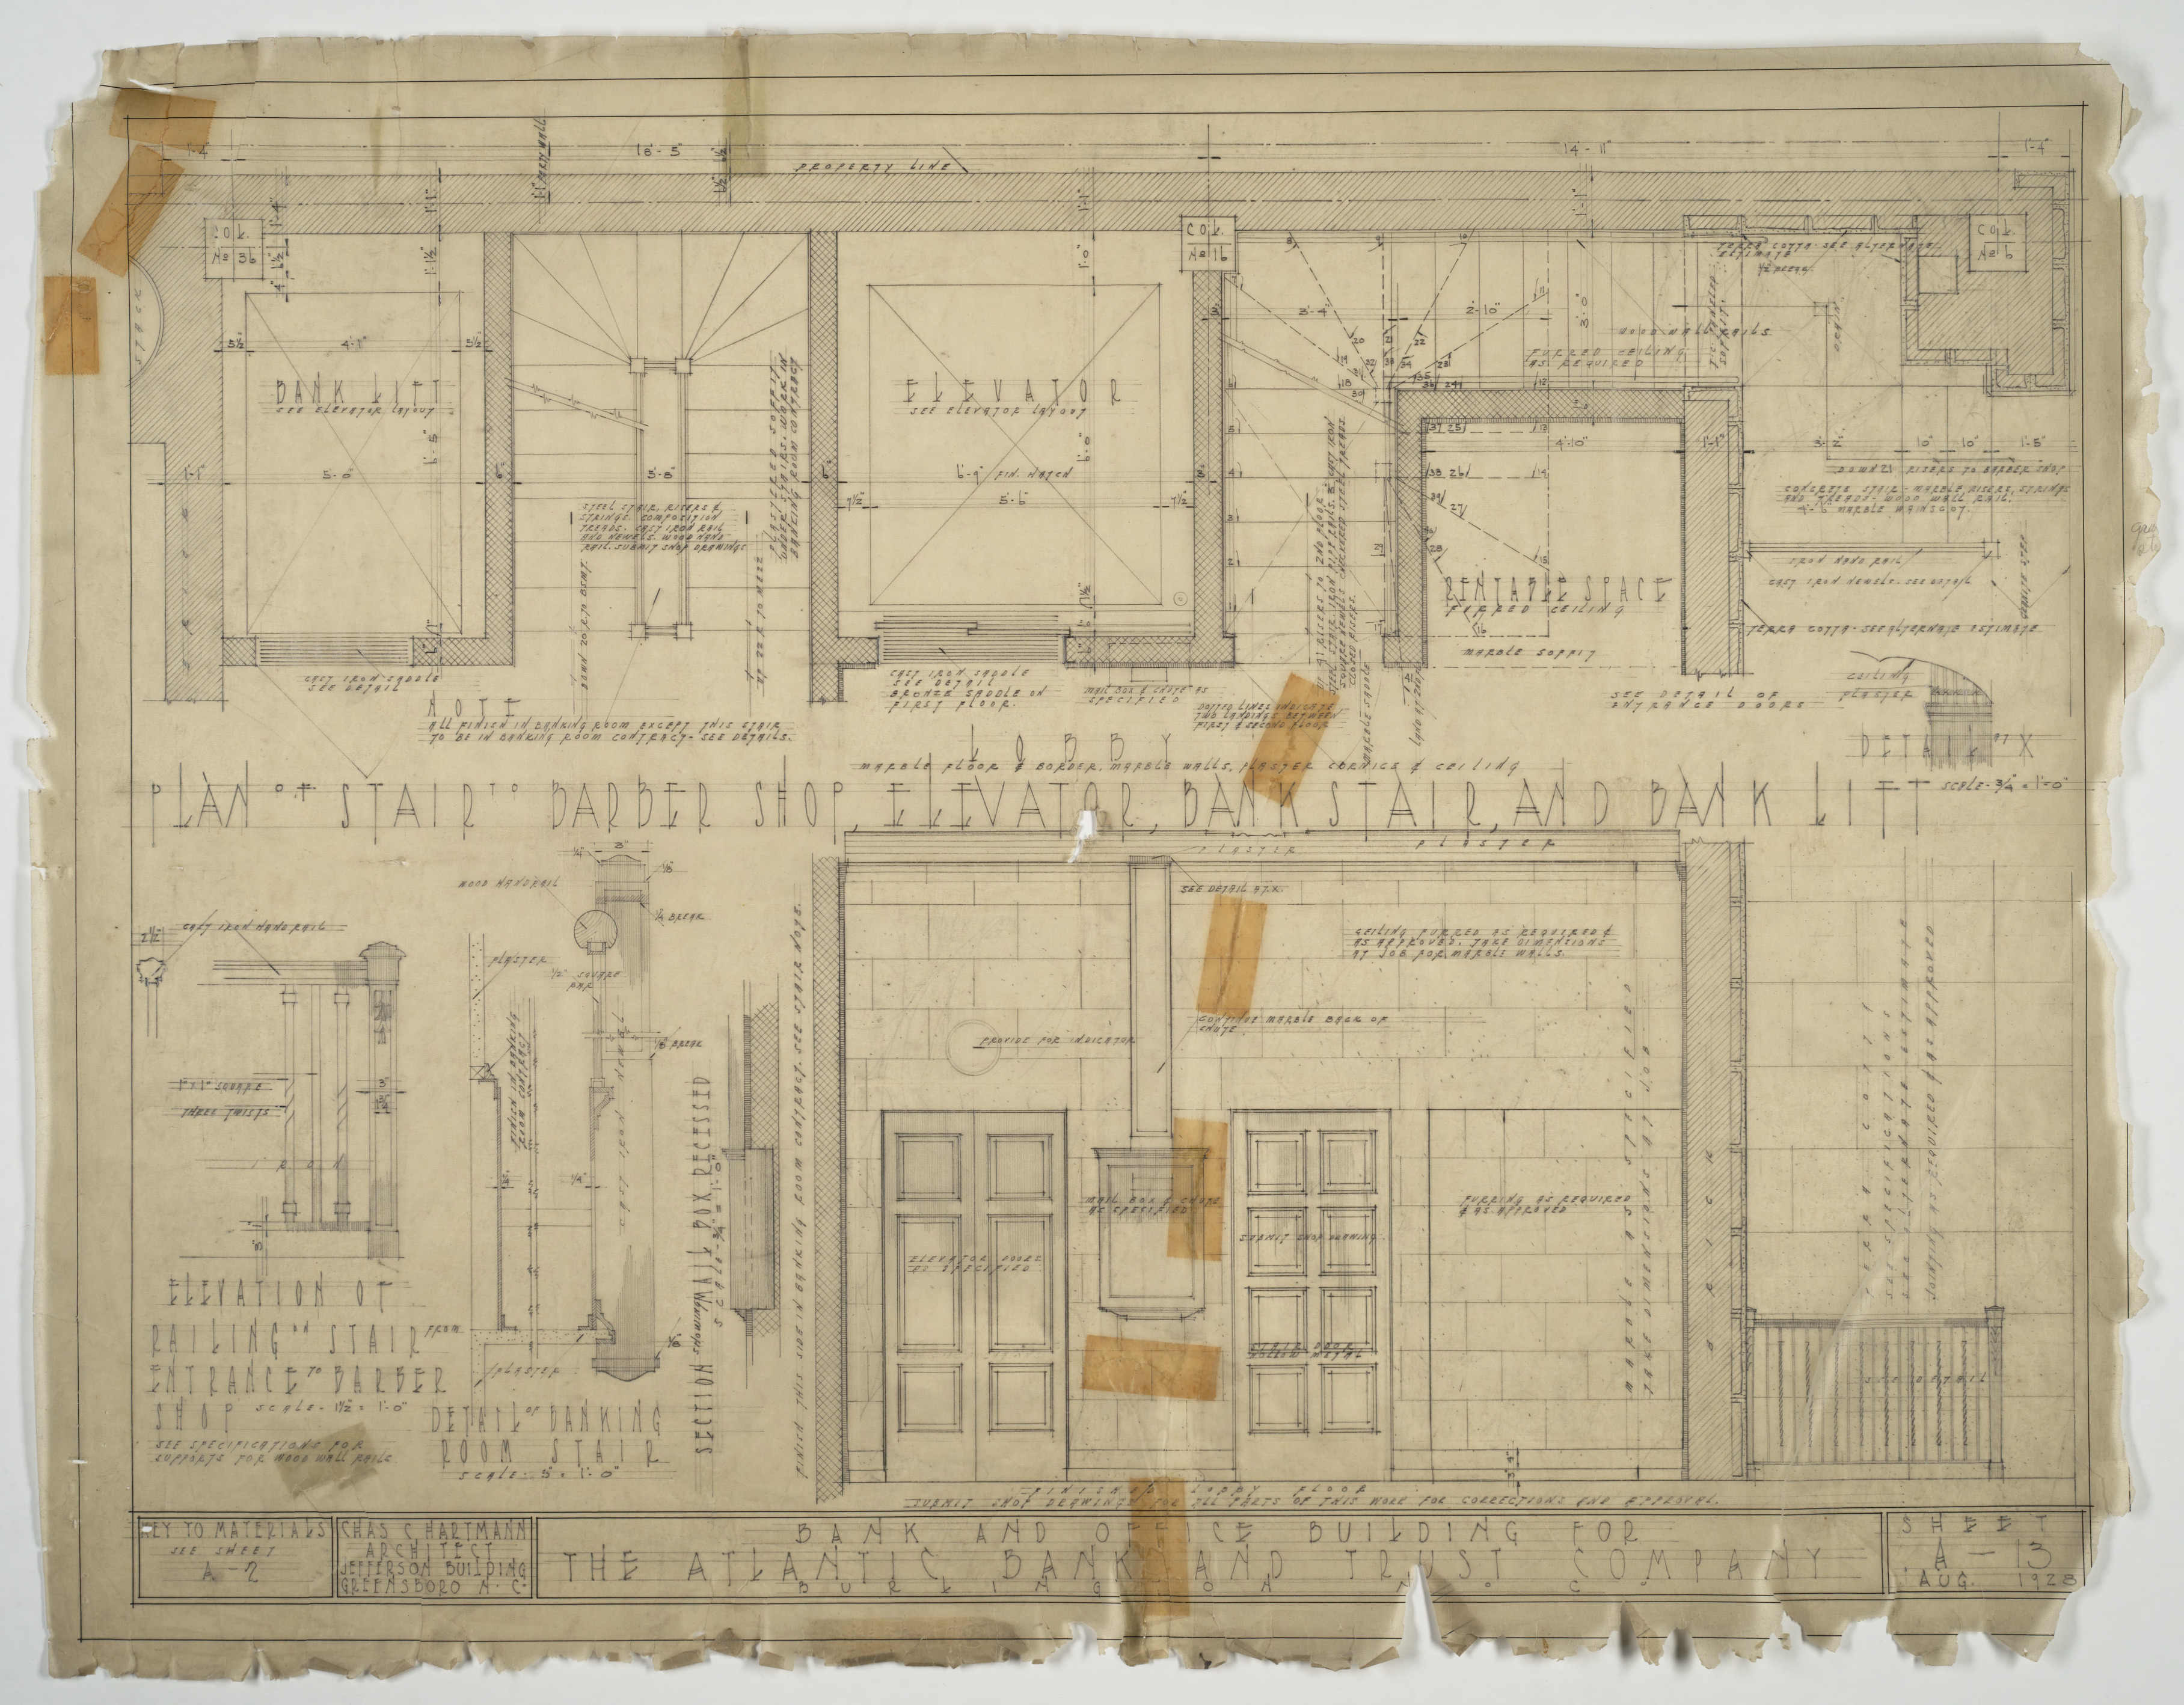 Stair and elevator plans and details atlantic bank and for Elevator plan drawing